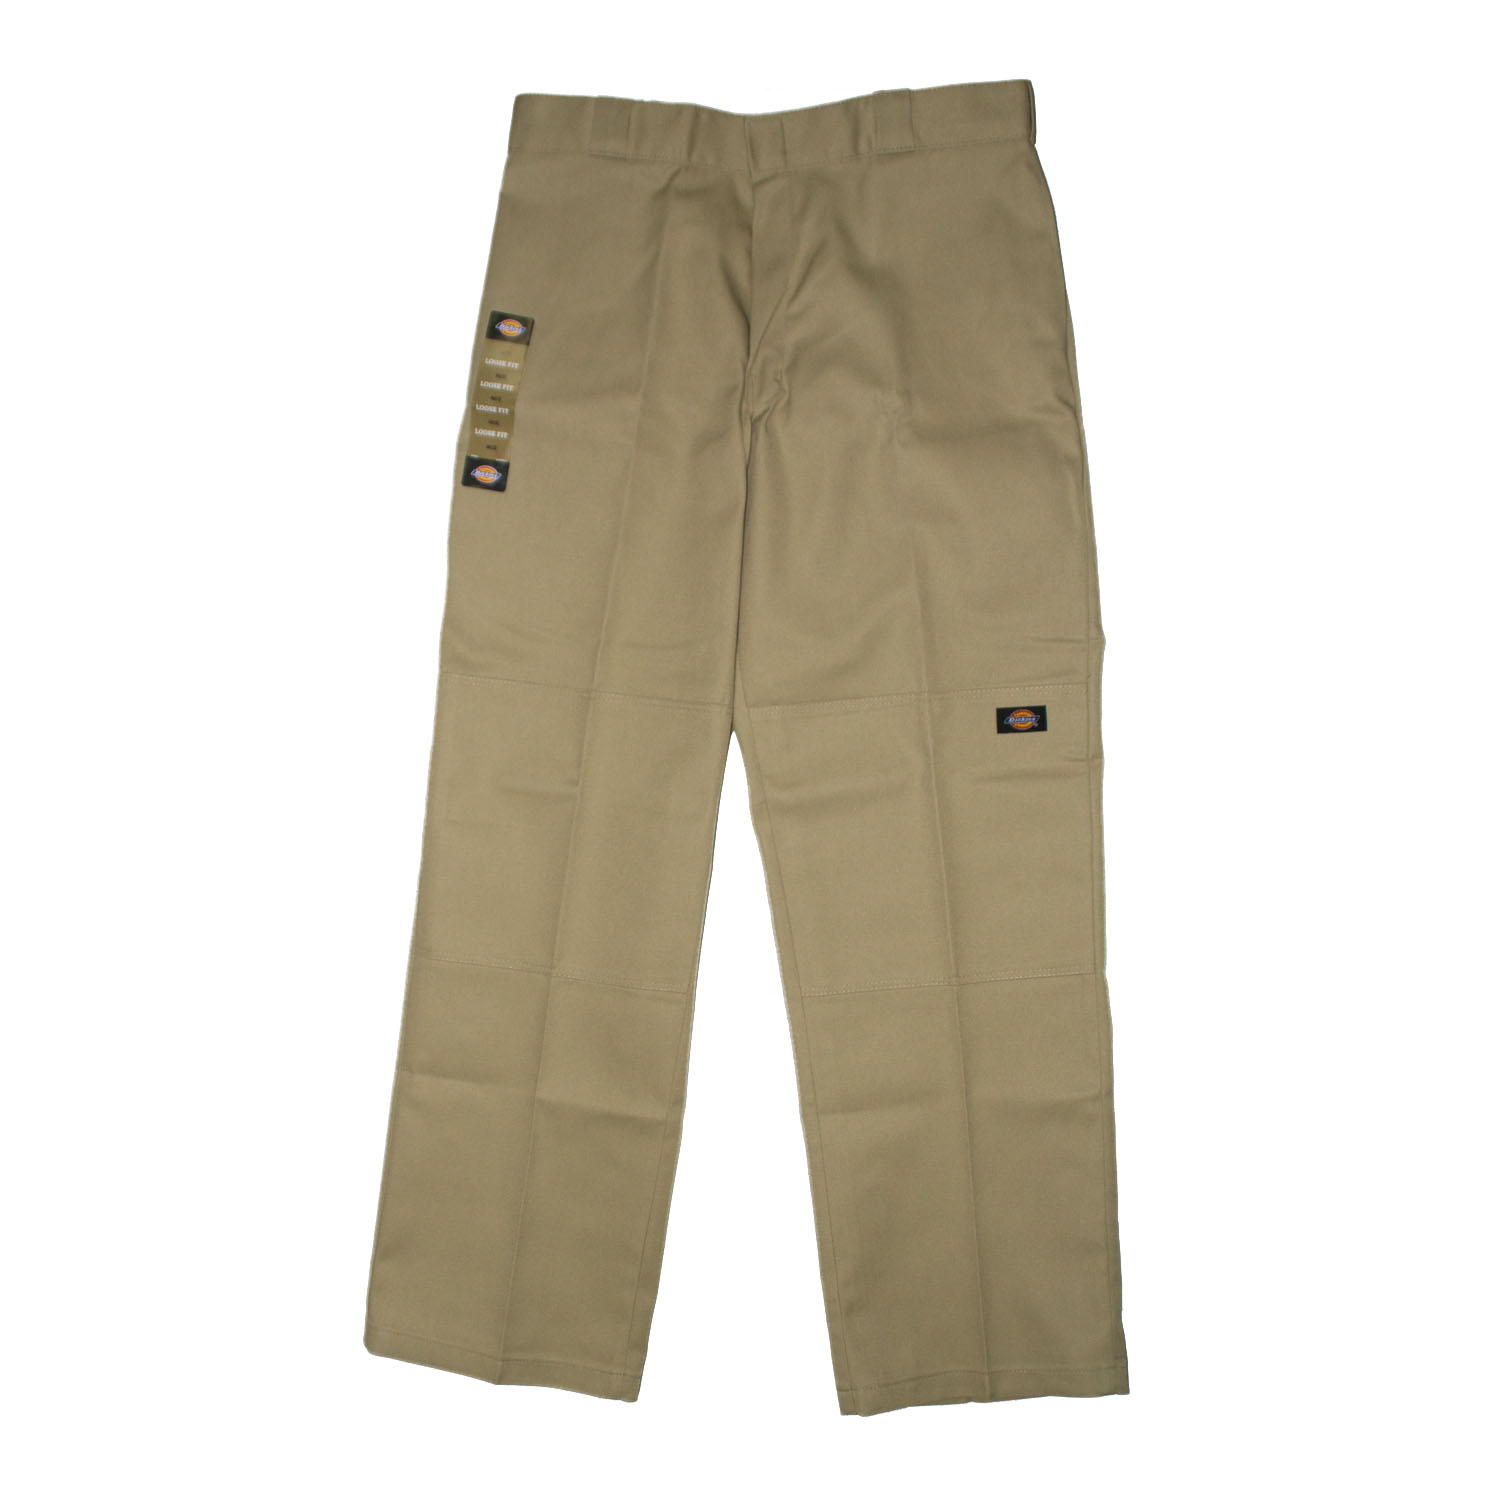 Dickies 852 Loose Double Knee Work Pants Khaki Australia